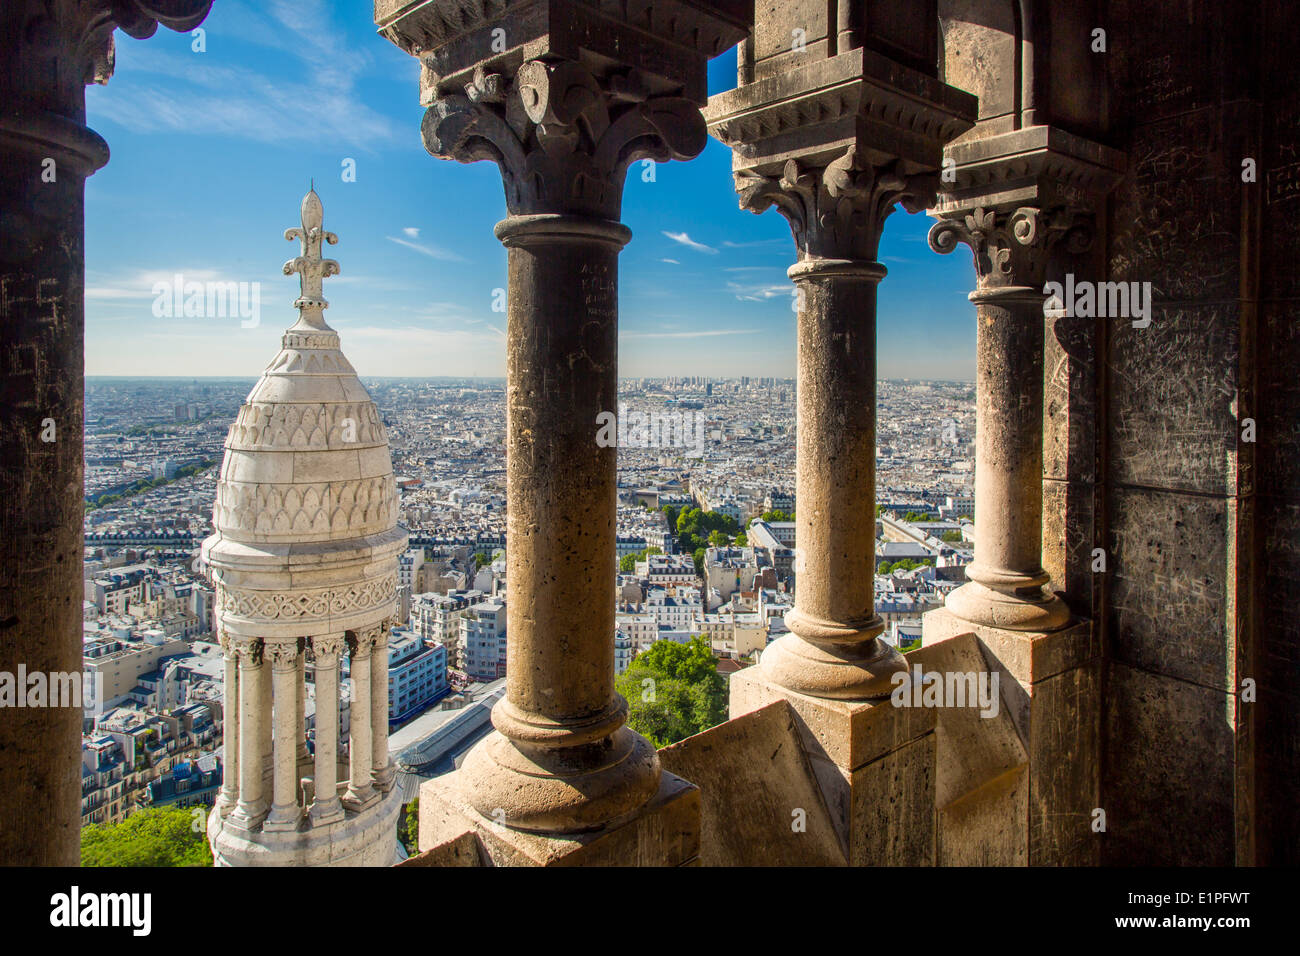 View from the top of Basilique du Sacre Coeur in Montmartre, Paris France - Stock Image